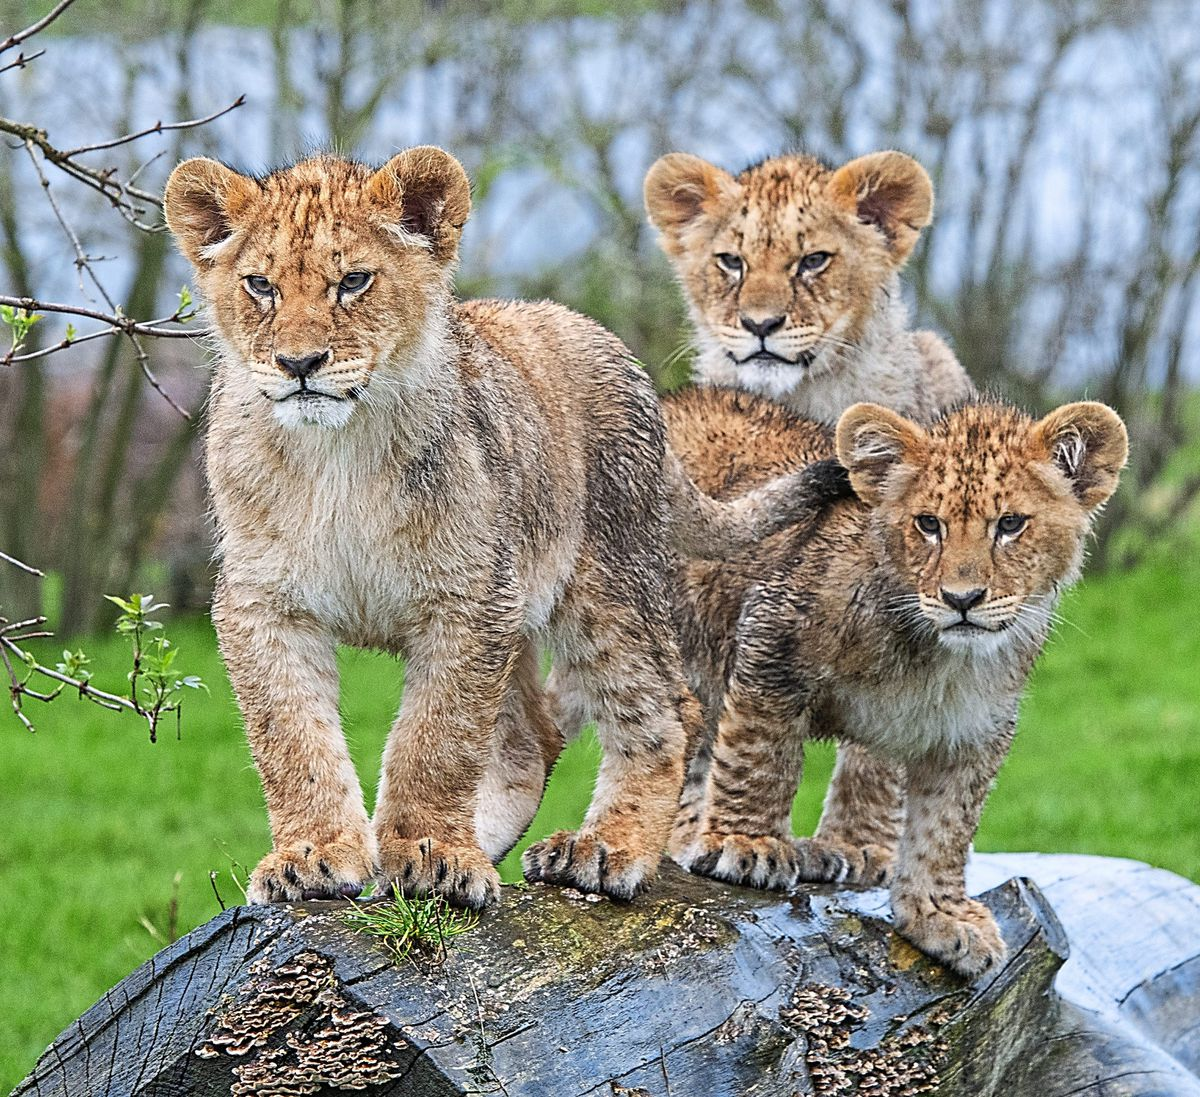 Lion cubs explore their new surroundings on a damp day at West Midlands Safari Park